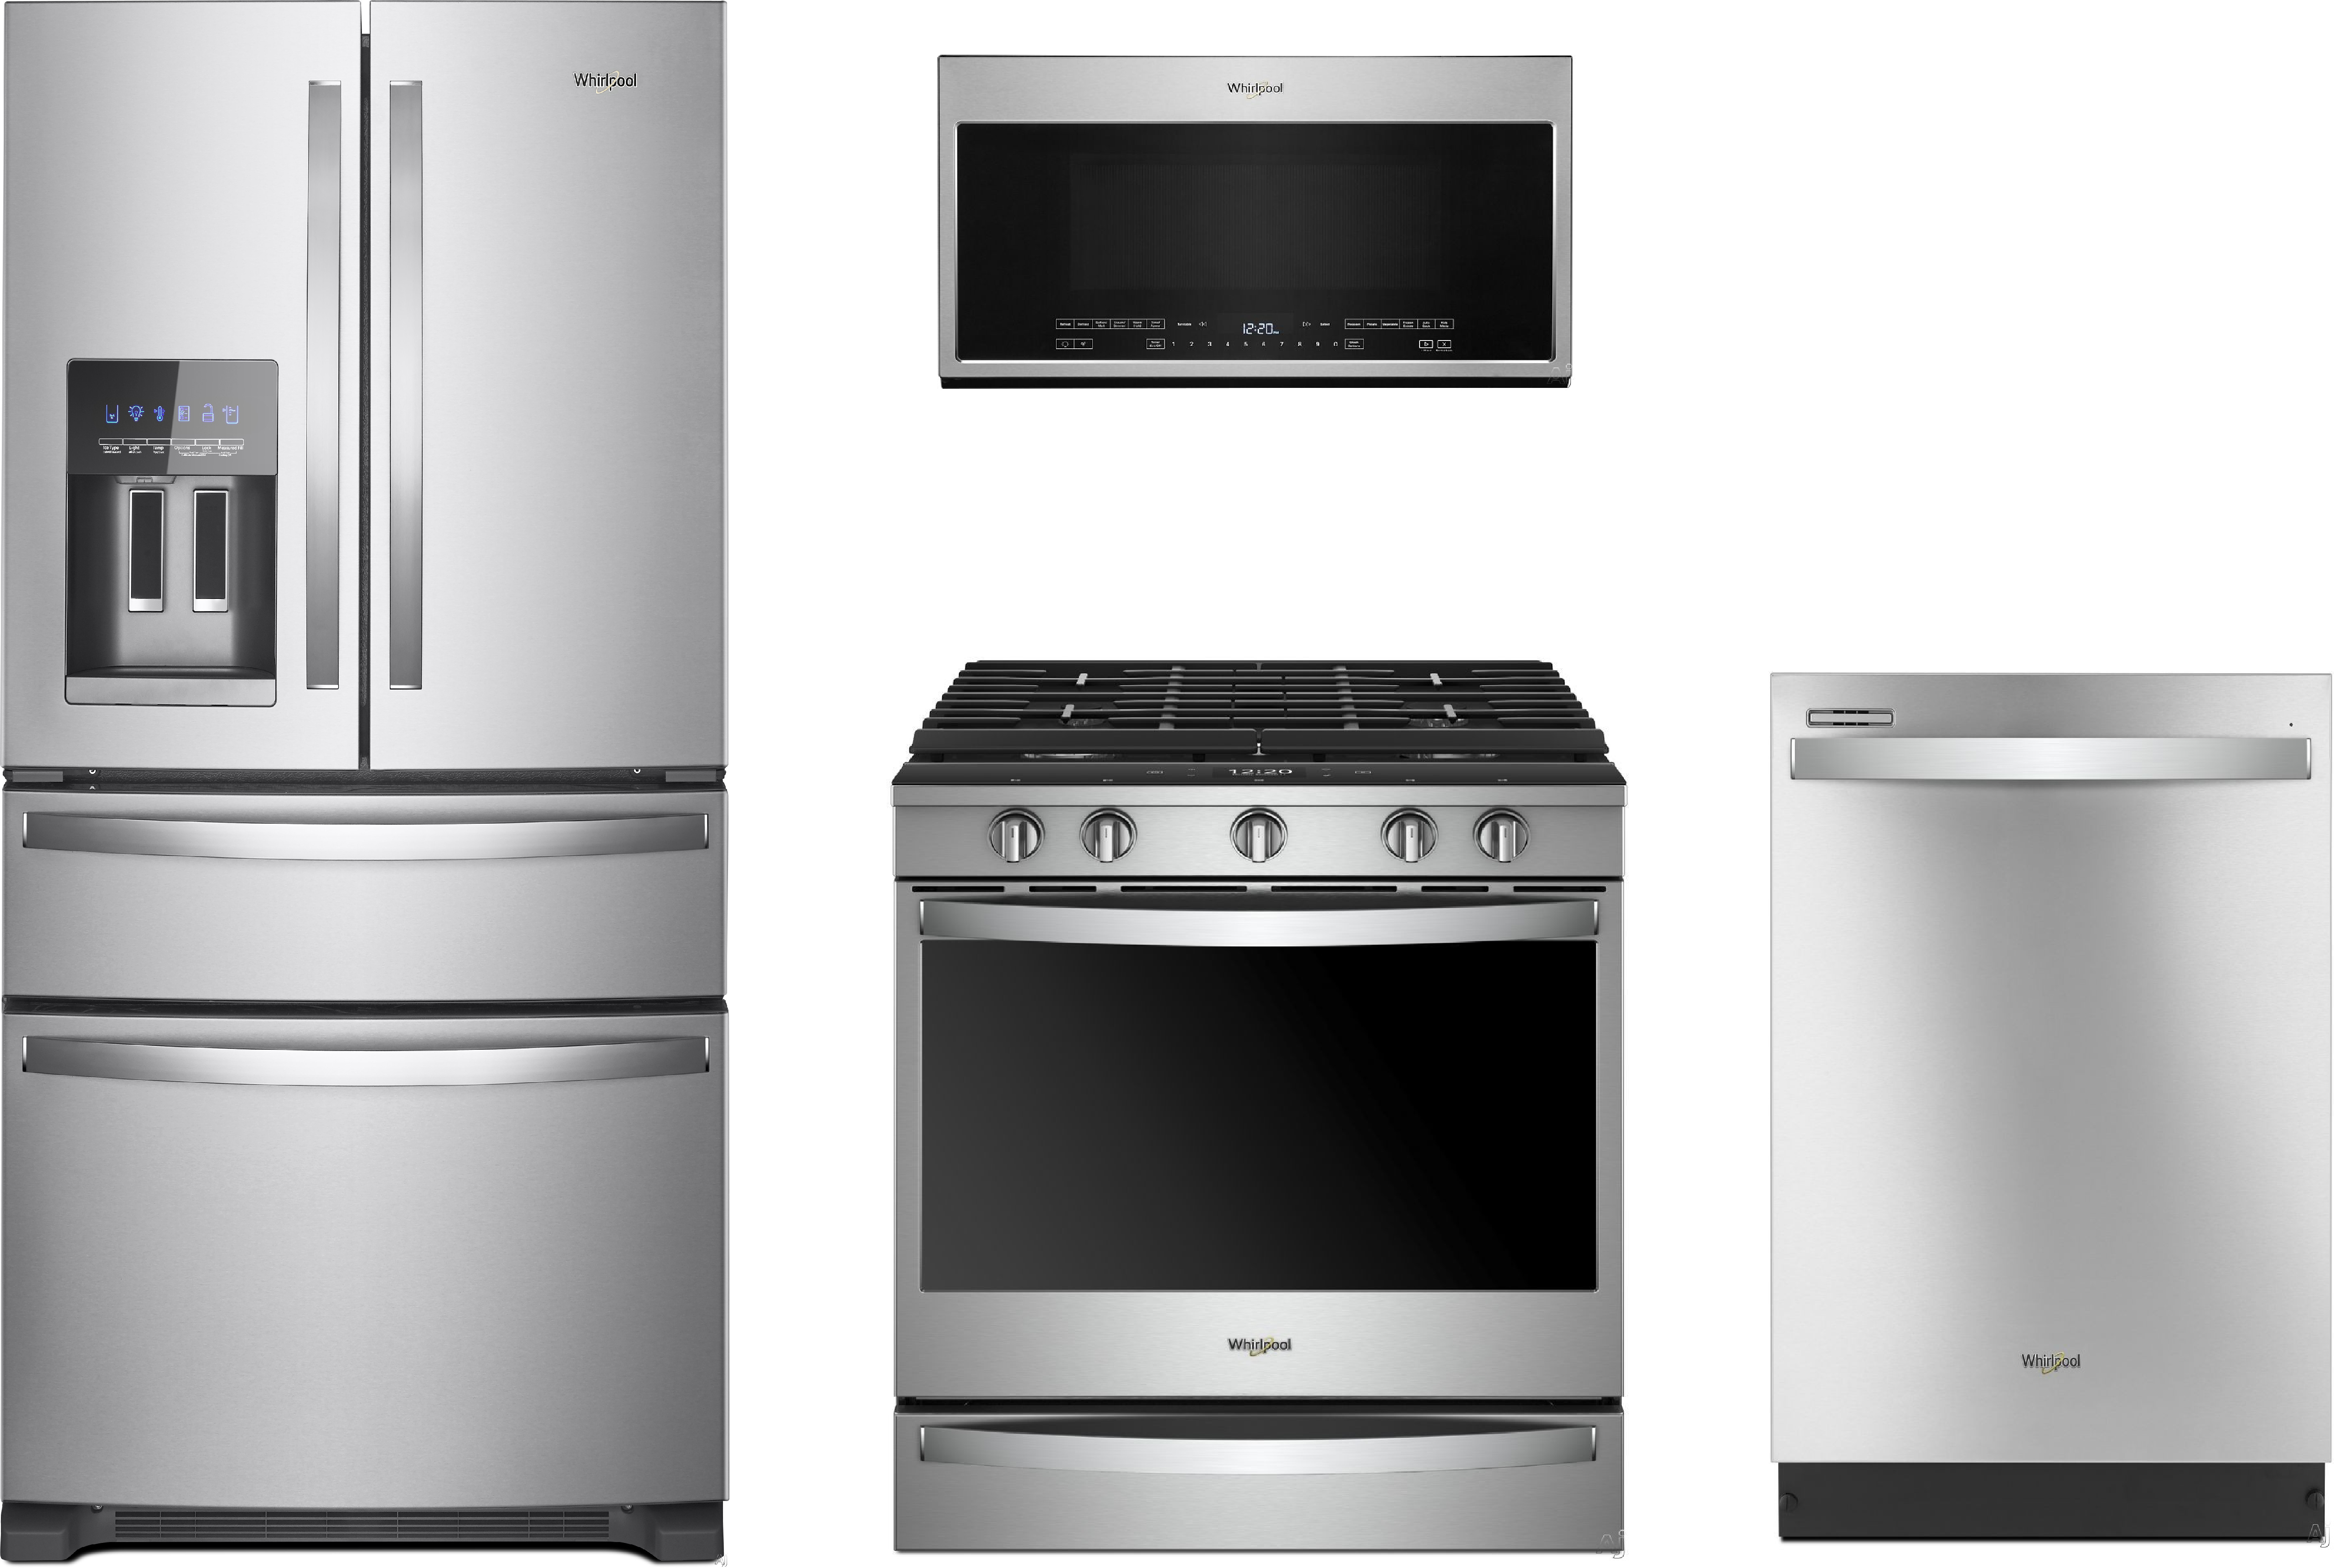 Whirlpool Wpreradwmw3219 4 Piece Kitchen Appliances Package With French Door Refrigerator Gas Range Dishwasher And Over The Range Microwave In Stainless Steel